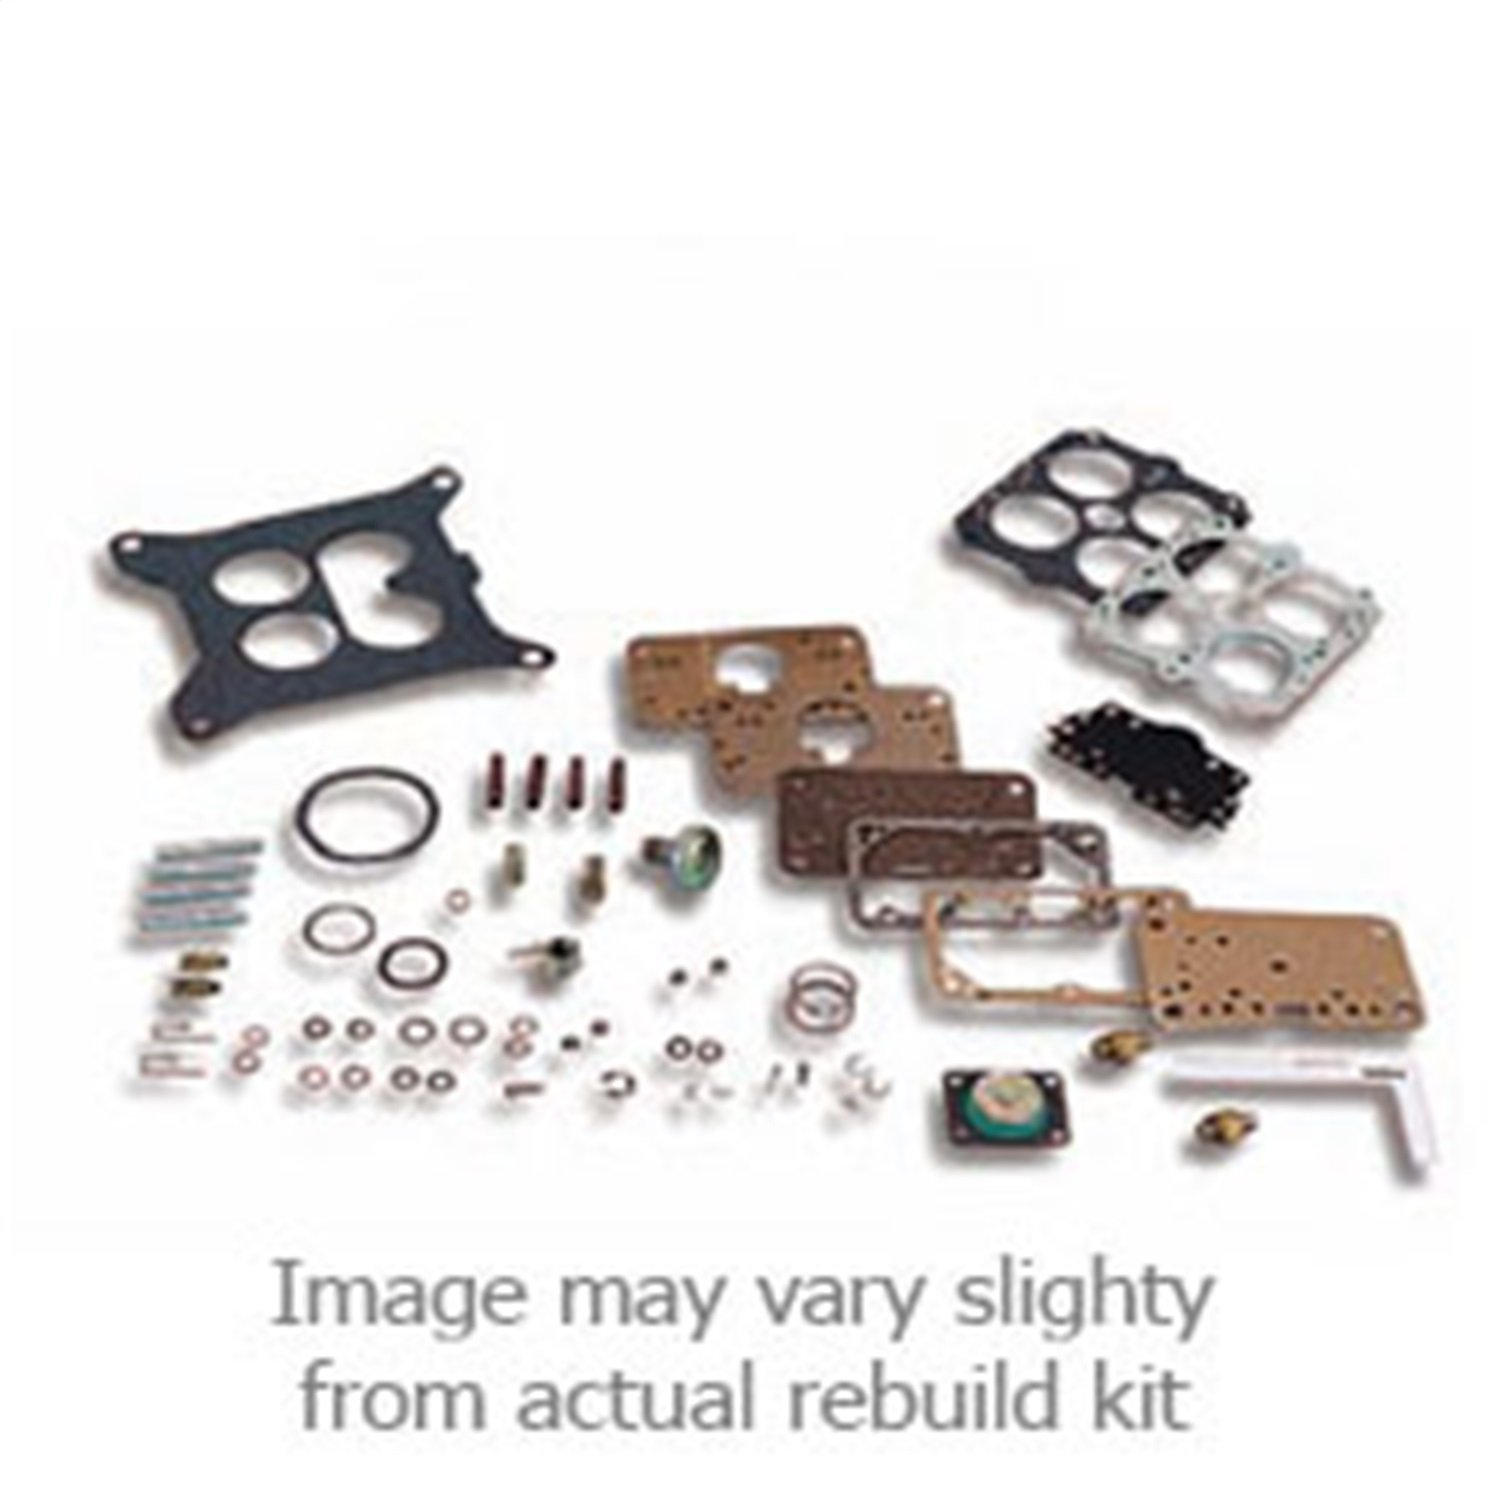 Holley 703-33 Marine Carburetor Rebuild Kit by Holley